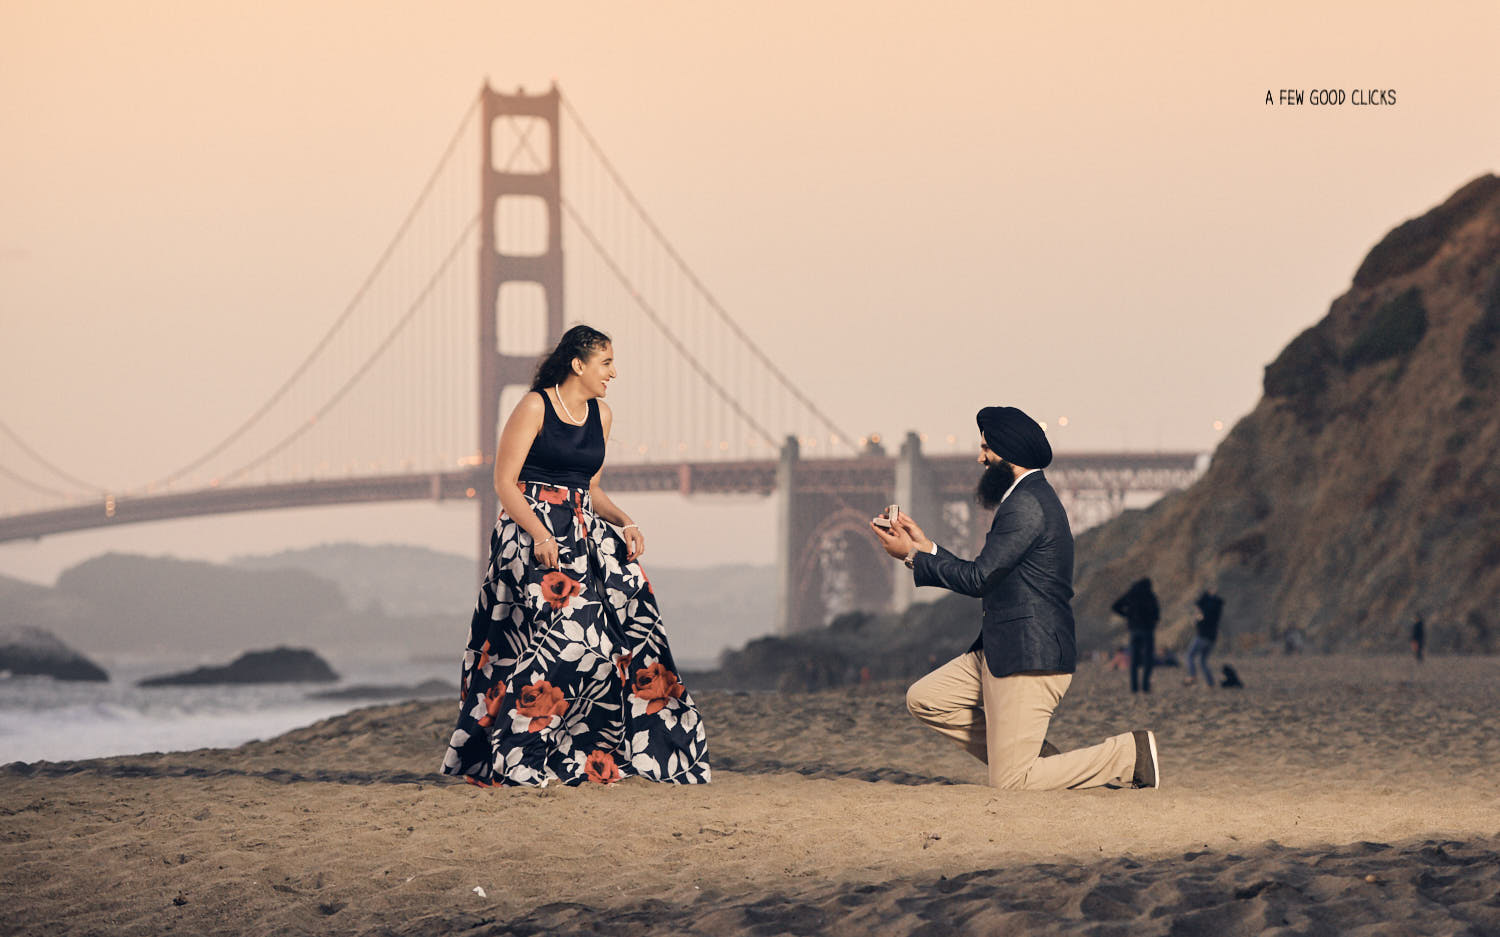 bakers-beach-surprise-engagement-session-photography-san-francisco 20.jpg